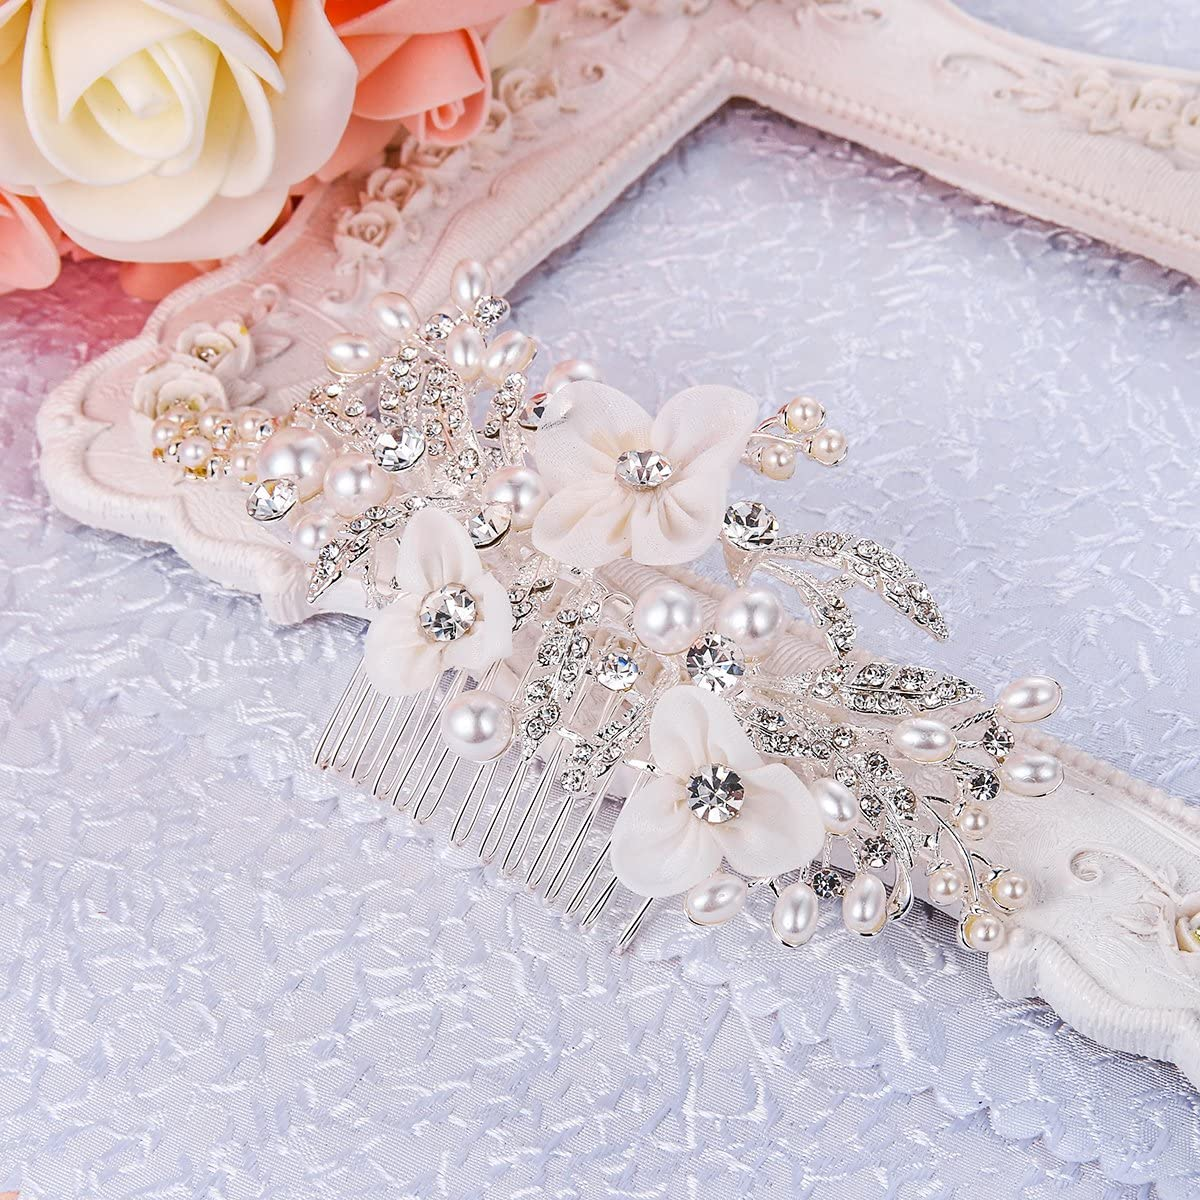 Clearine Womens Bohemian Ivory Color Simulated Pearl Bridal Crystal Hollow Flower Hair Comb Clear Silver-Tone